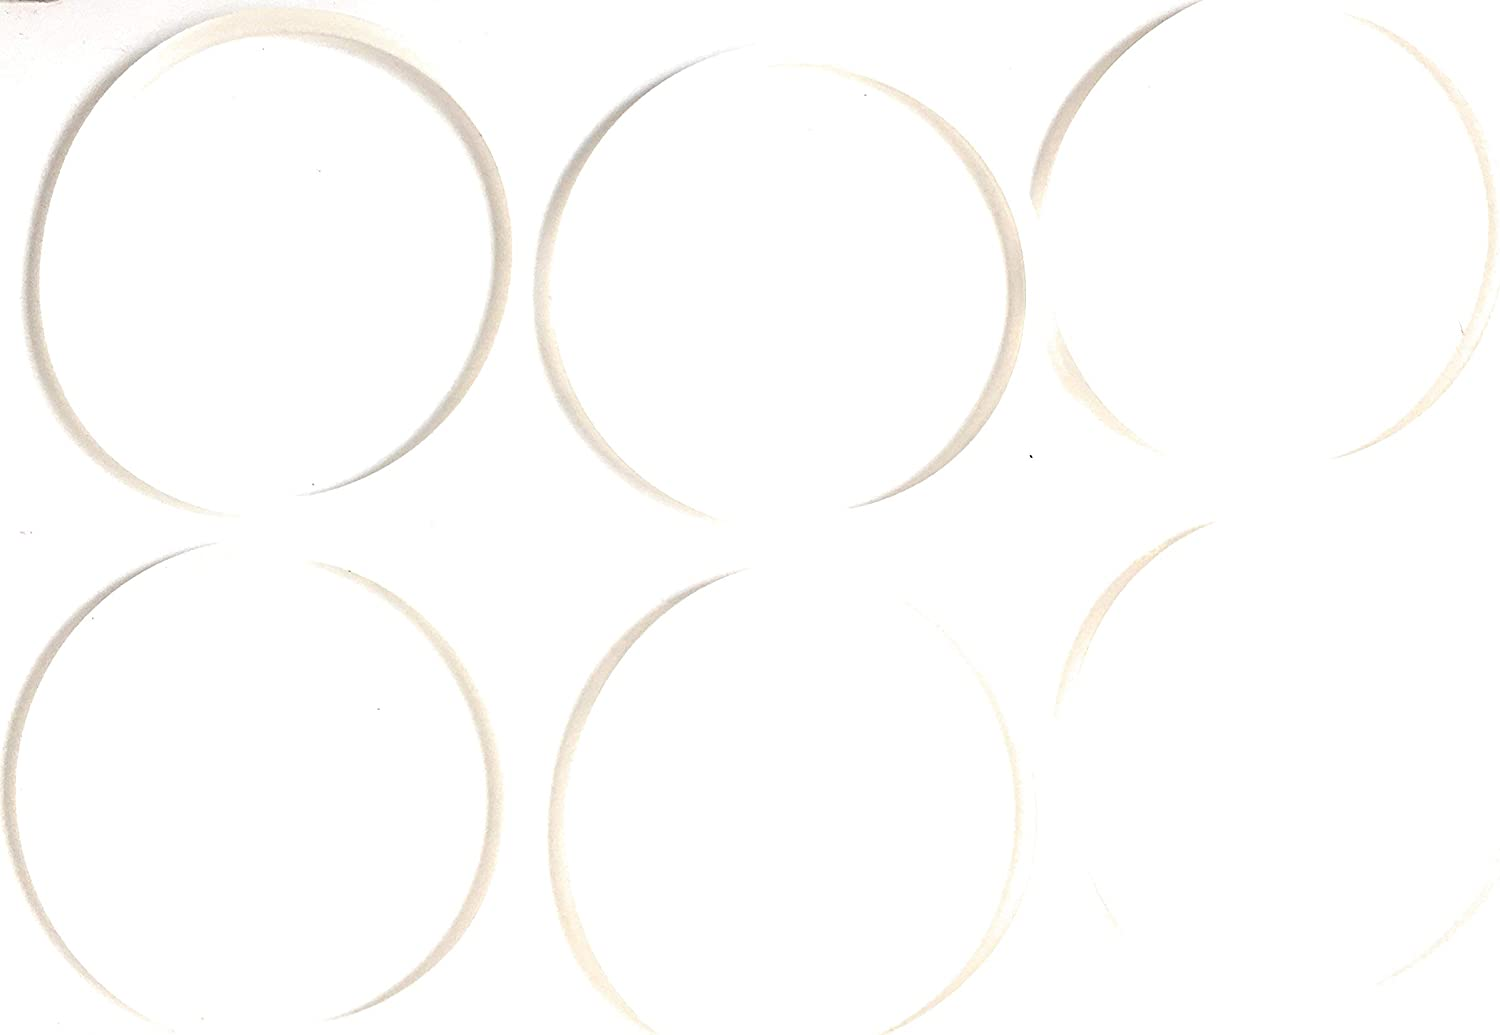 FAB INTERNATIONAL Replacement Gasket Compatible with Sensio Bella Cucina 13330, 13586, 13615, 10029, 3 Inch Diameter, 6 Pack White. (After Market Part)